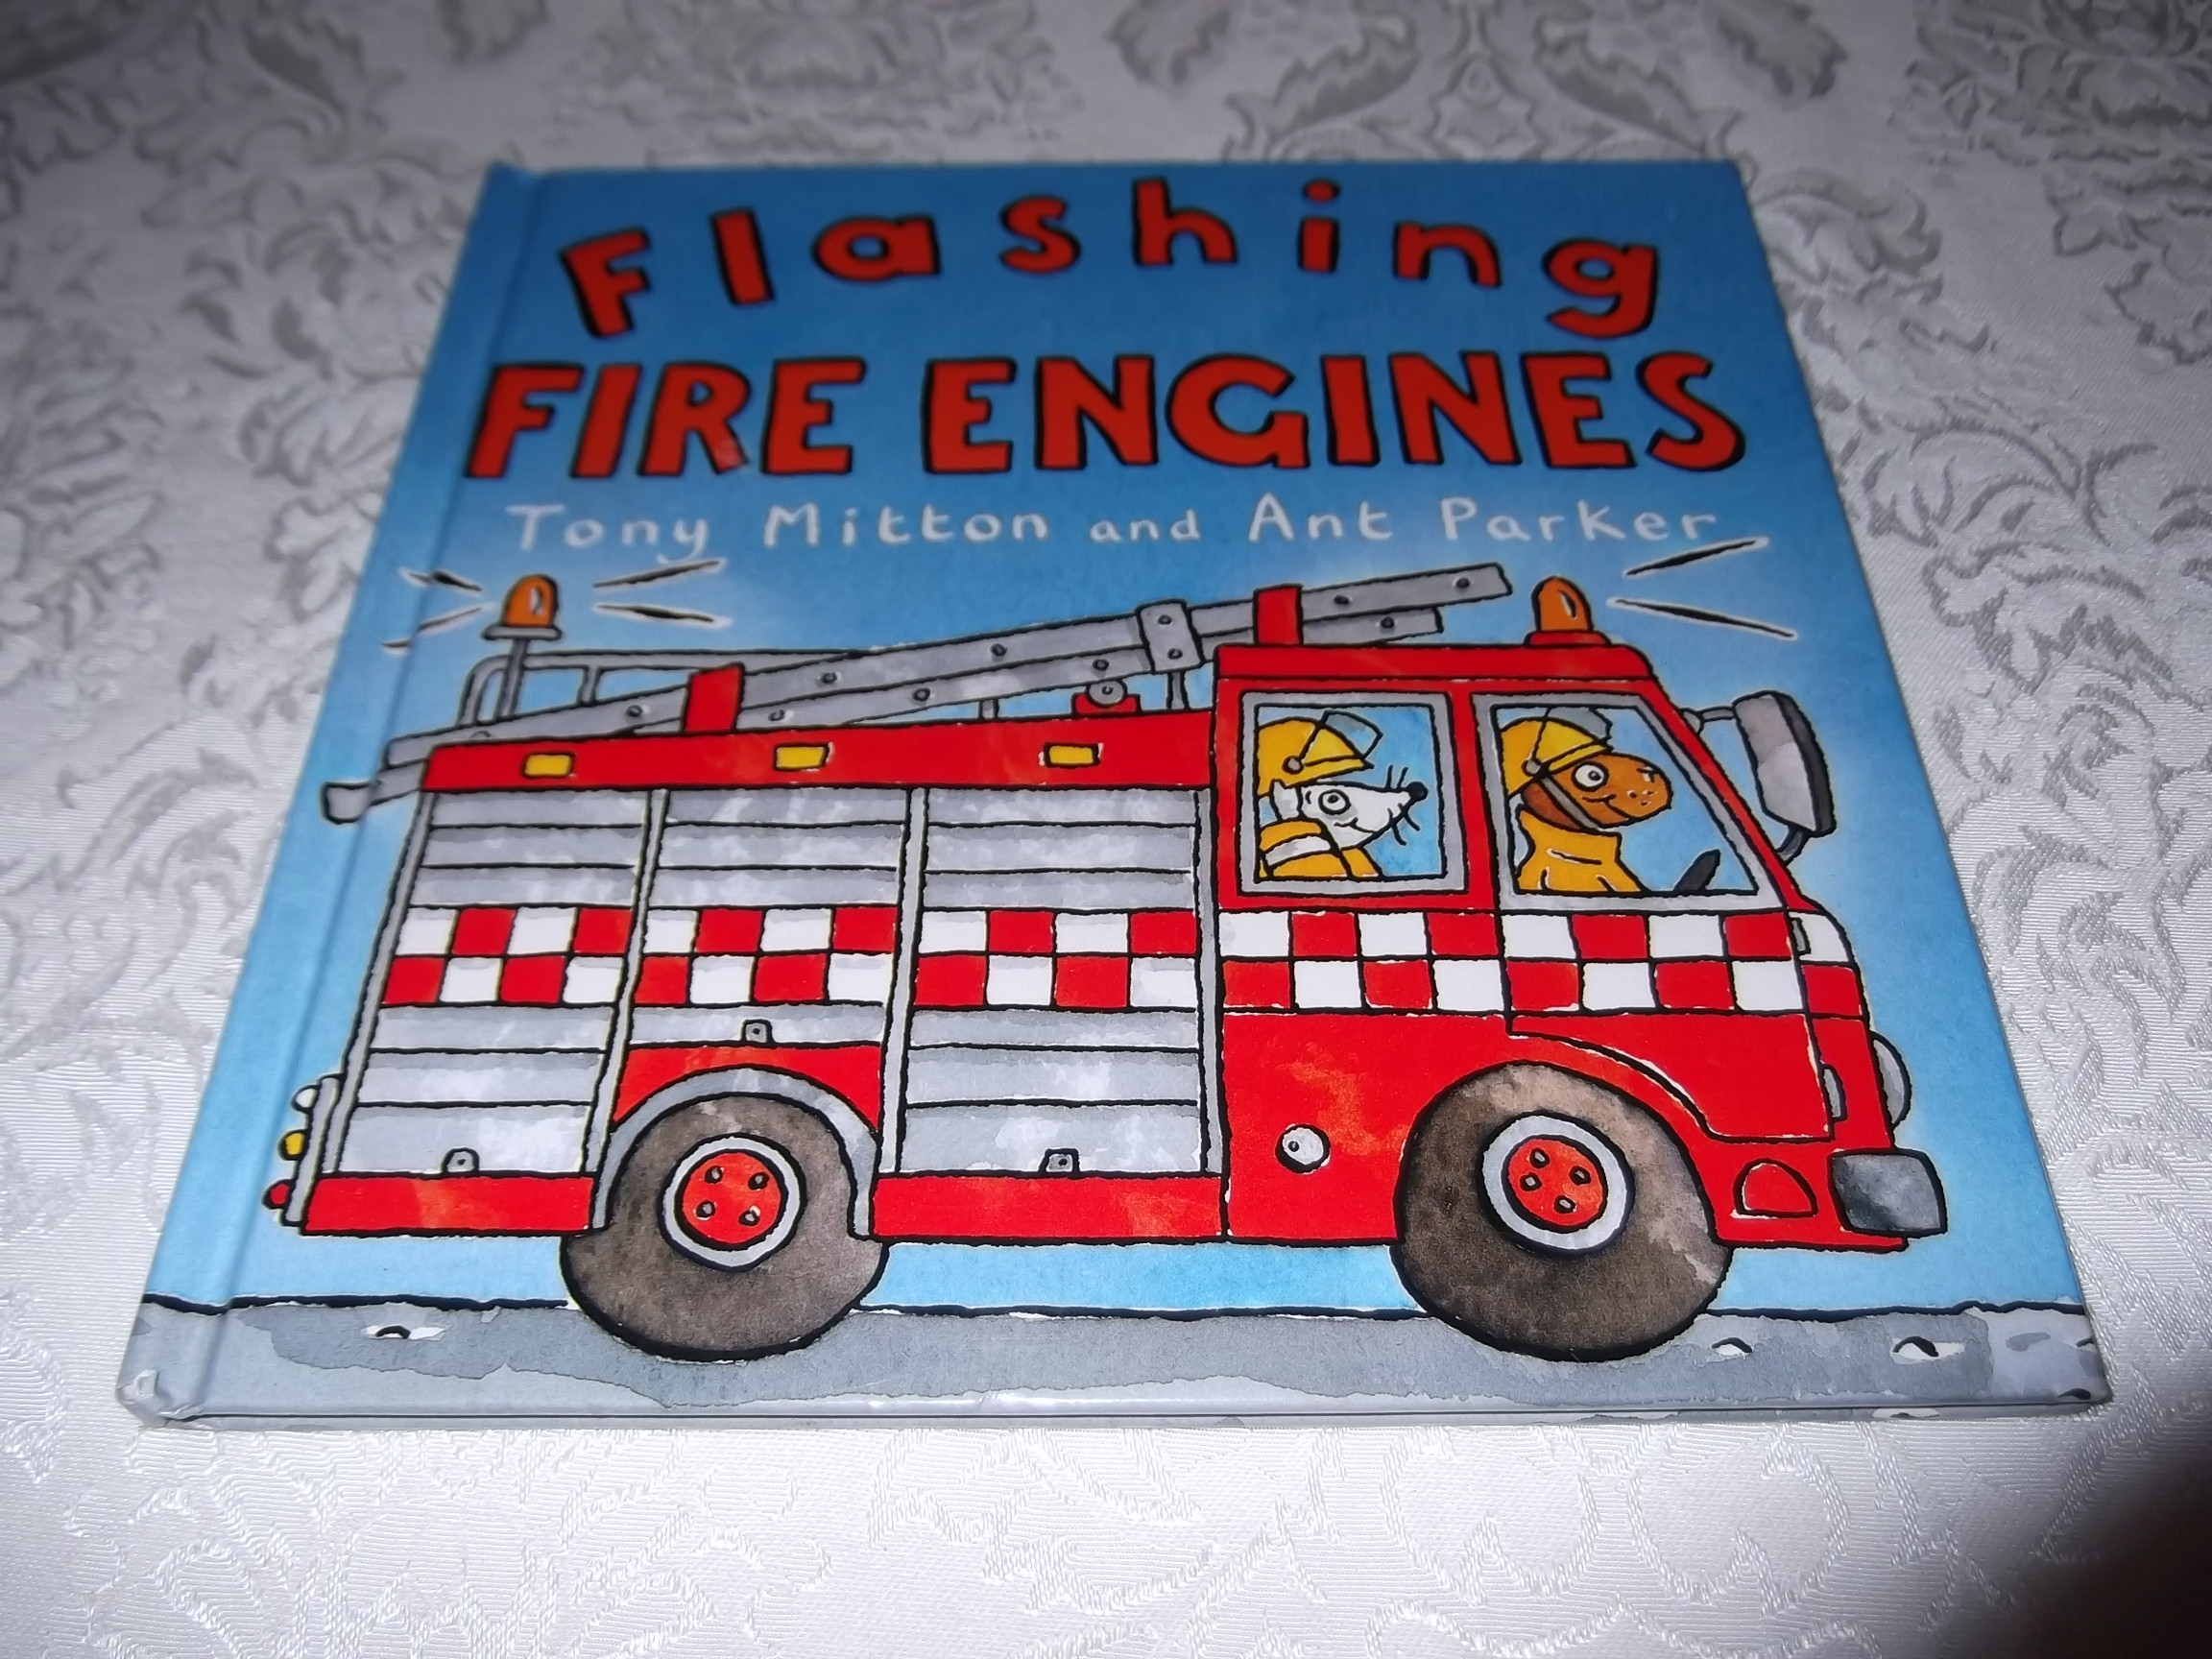 Flashing Fire Engines Tony Mitton Ant Parker good hardcover